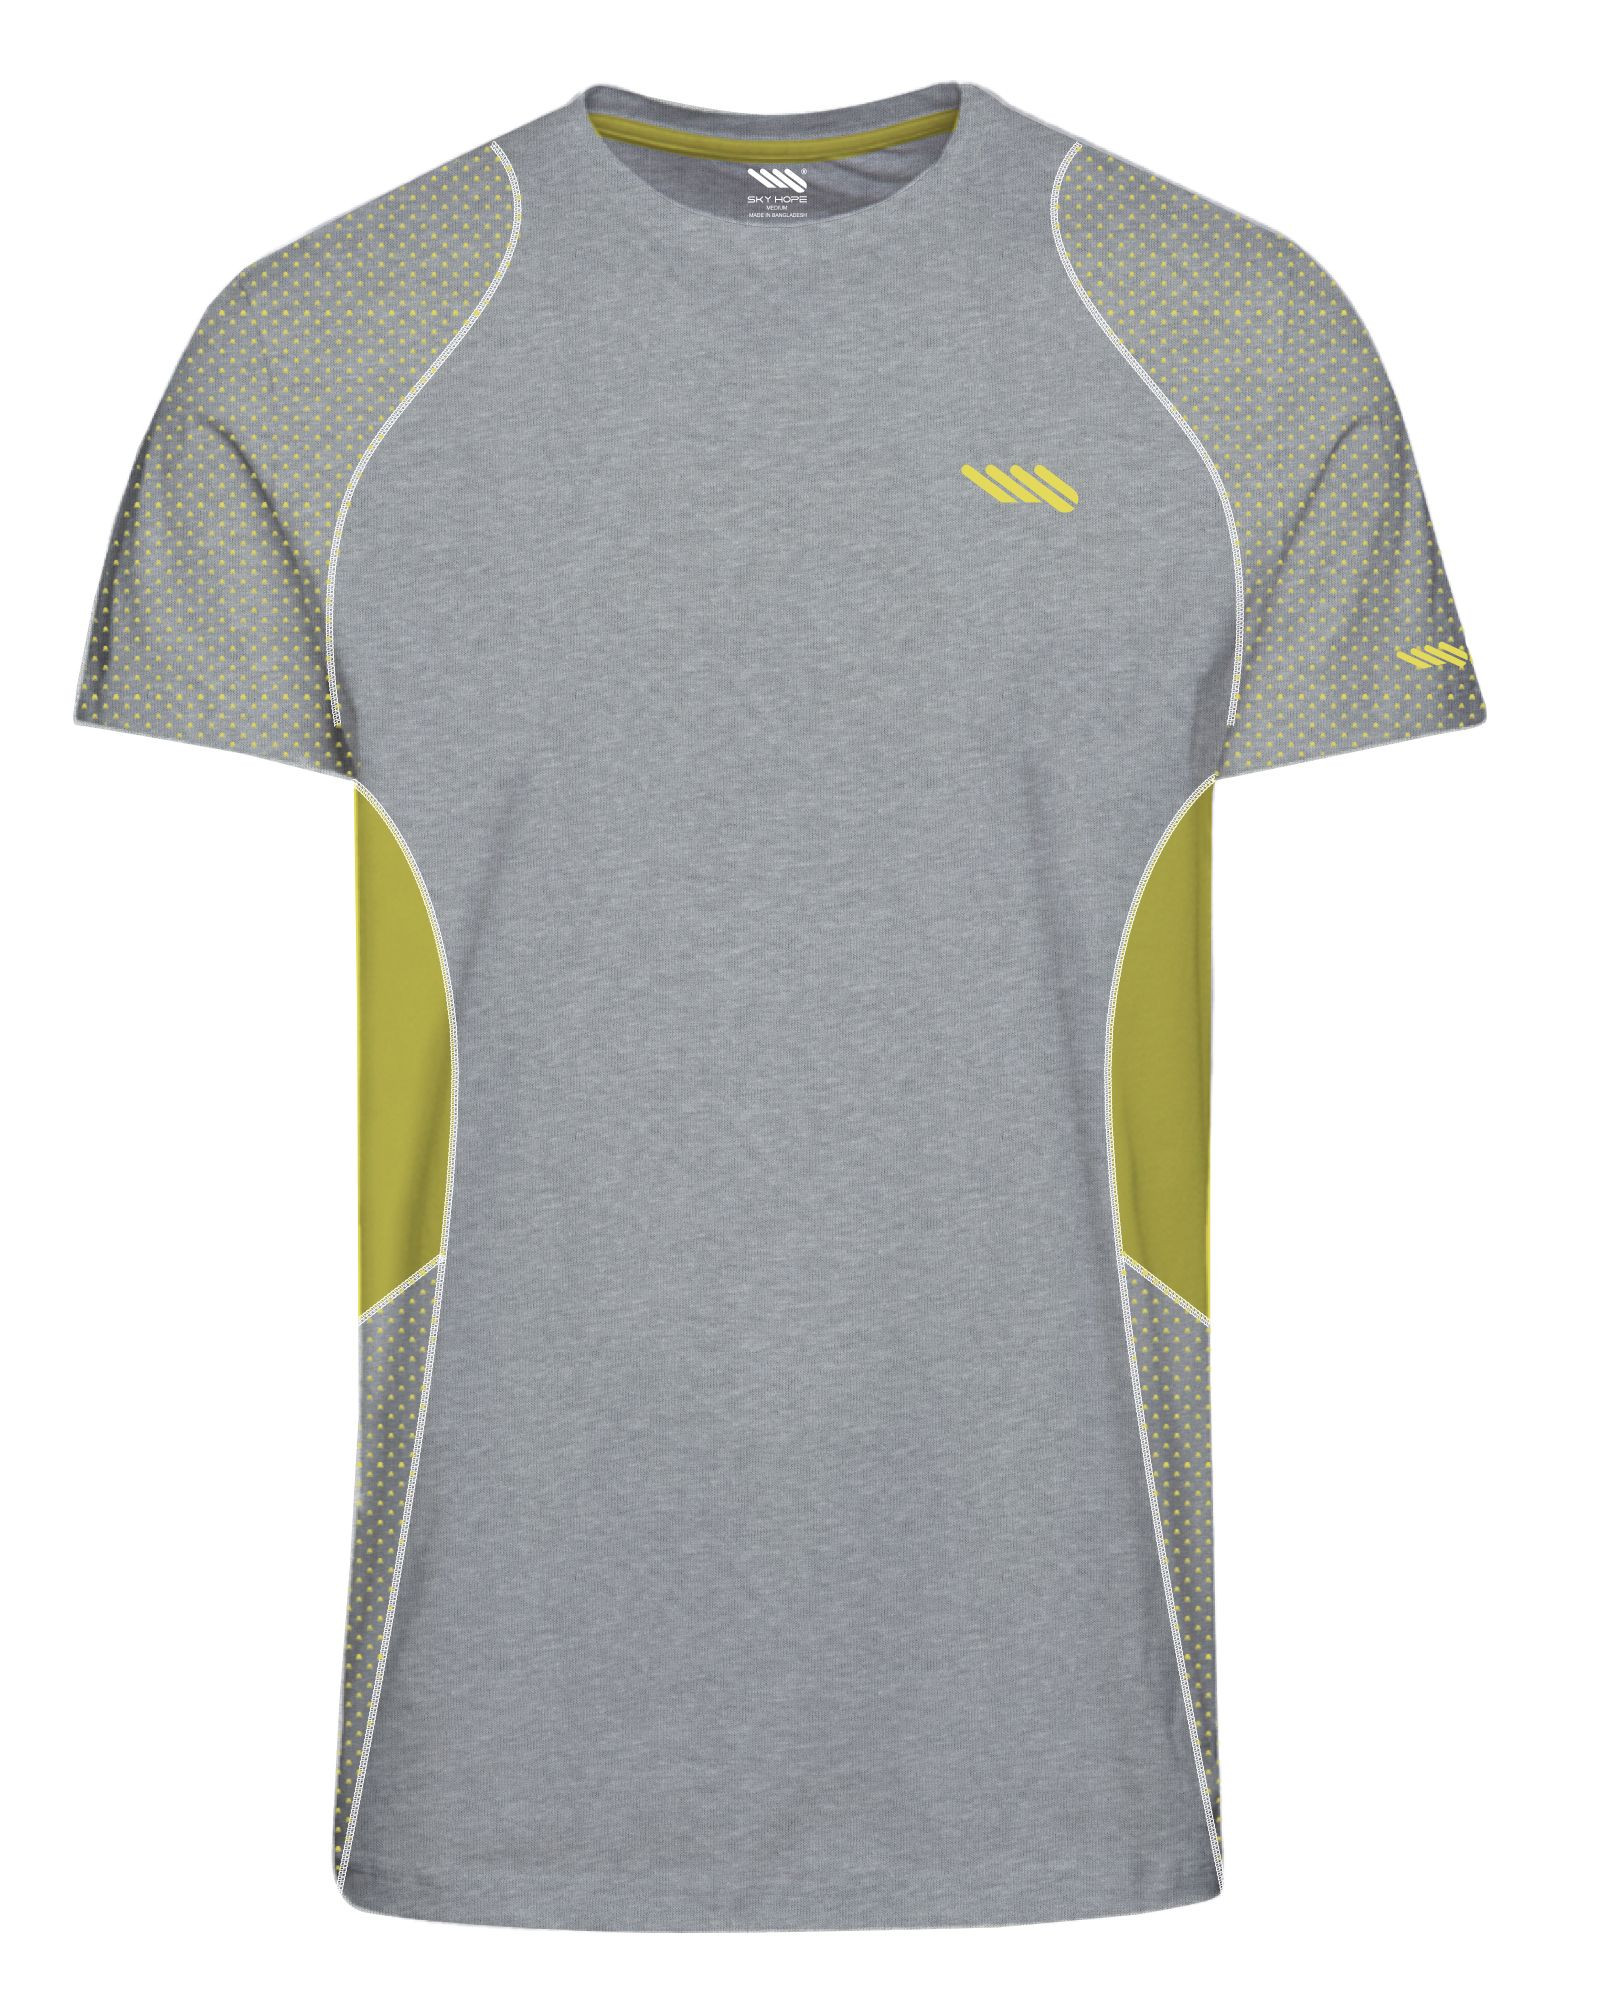 Men's Dry Fit Mesh Athletic Tee Shirts